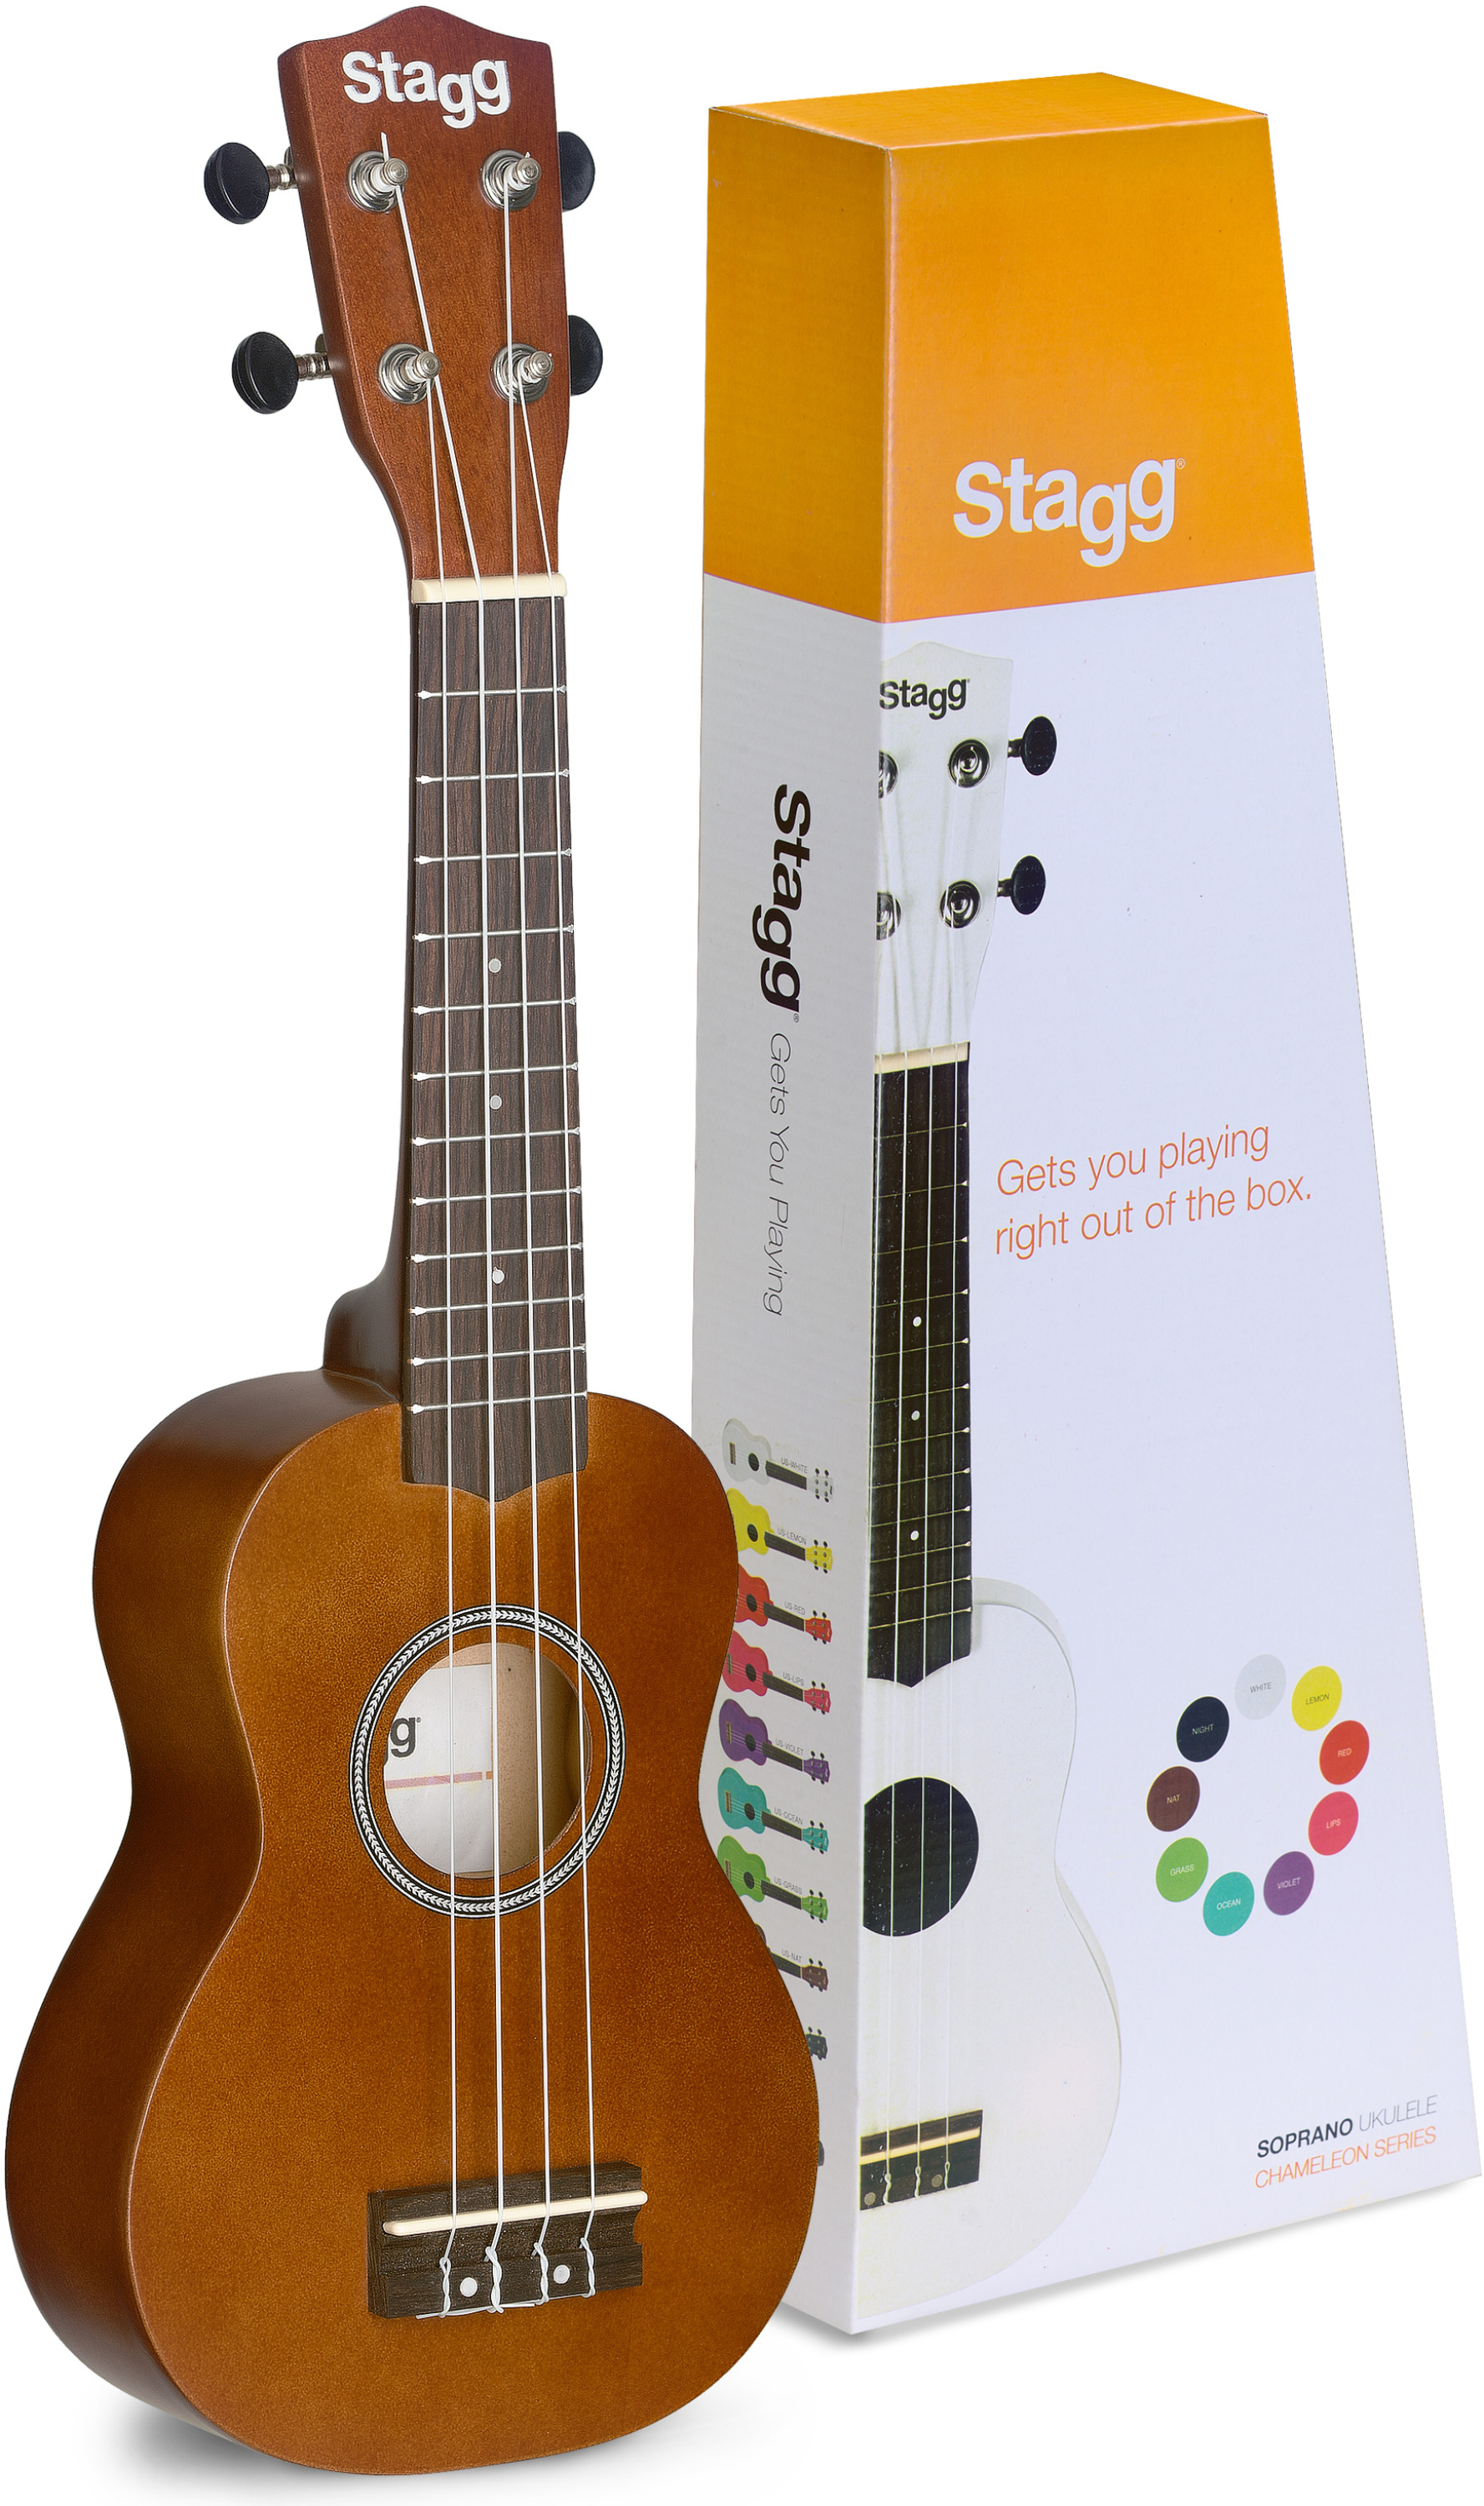 Stagg Soprano Ukulele (http://www.staggmusic.com/)